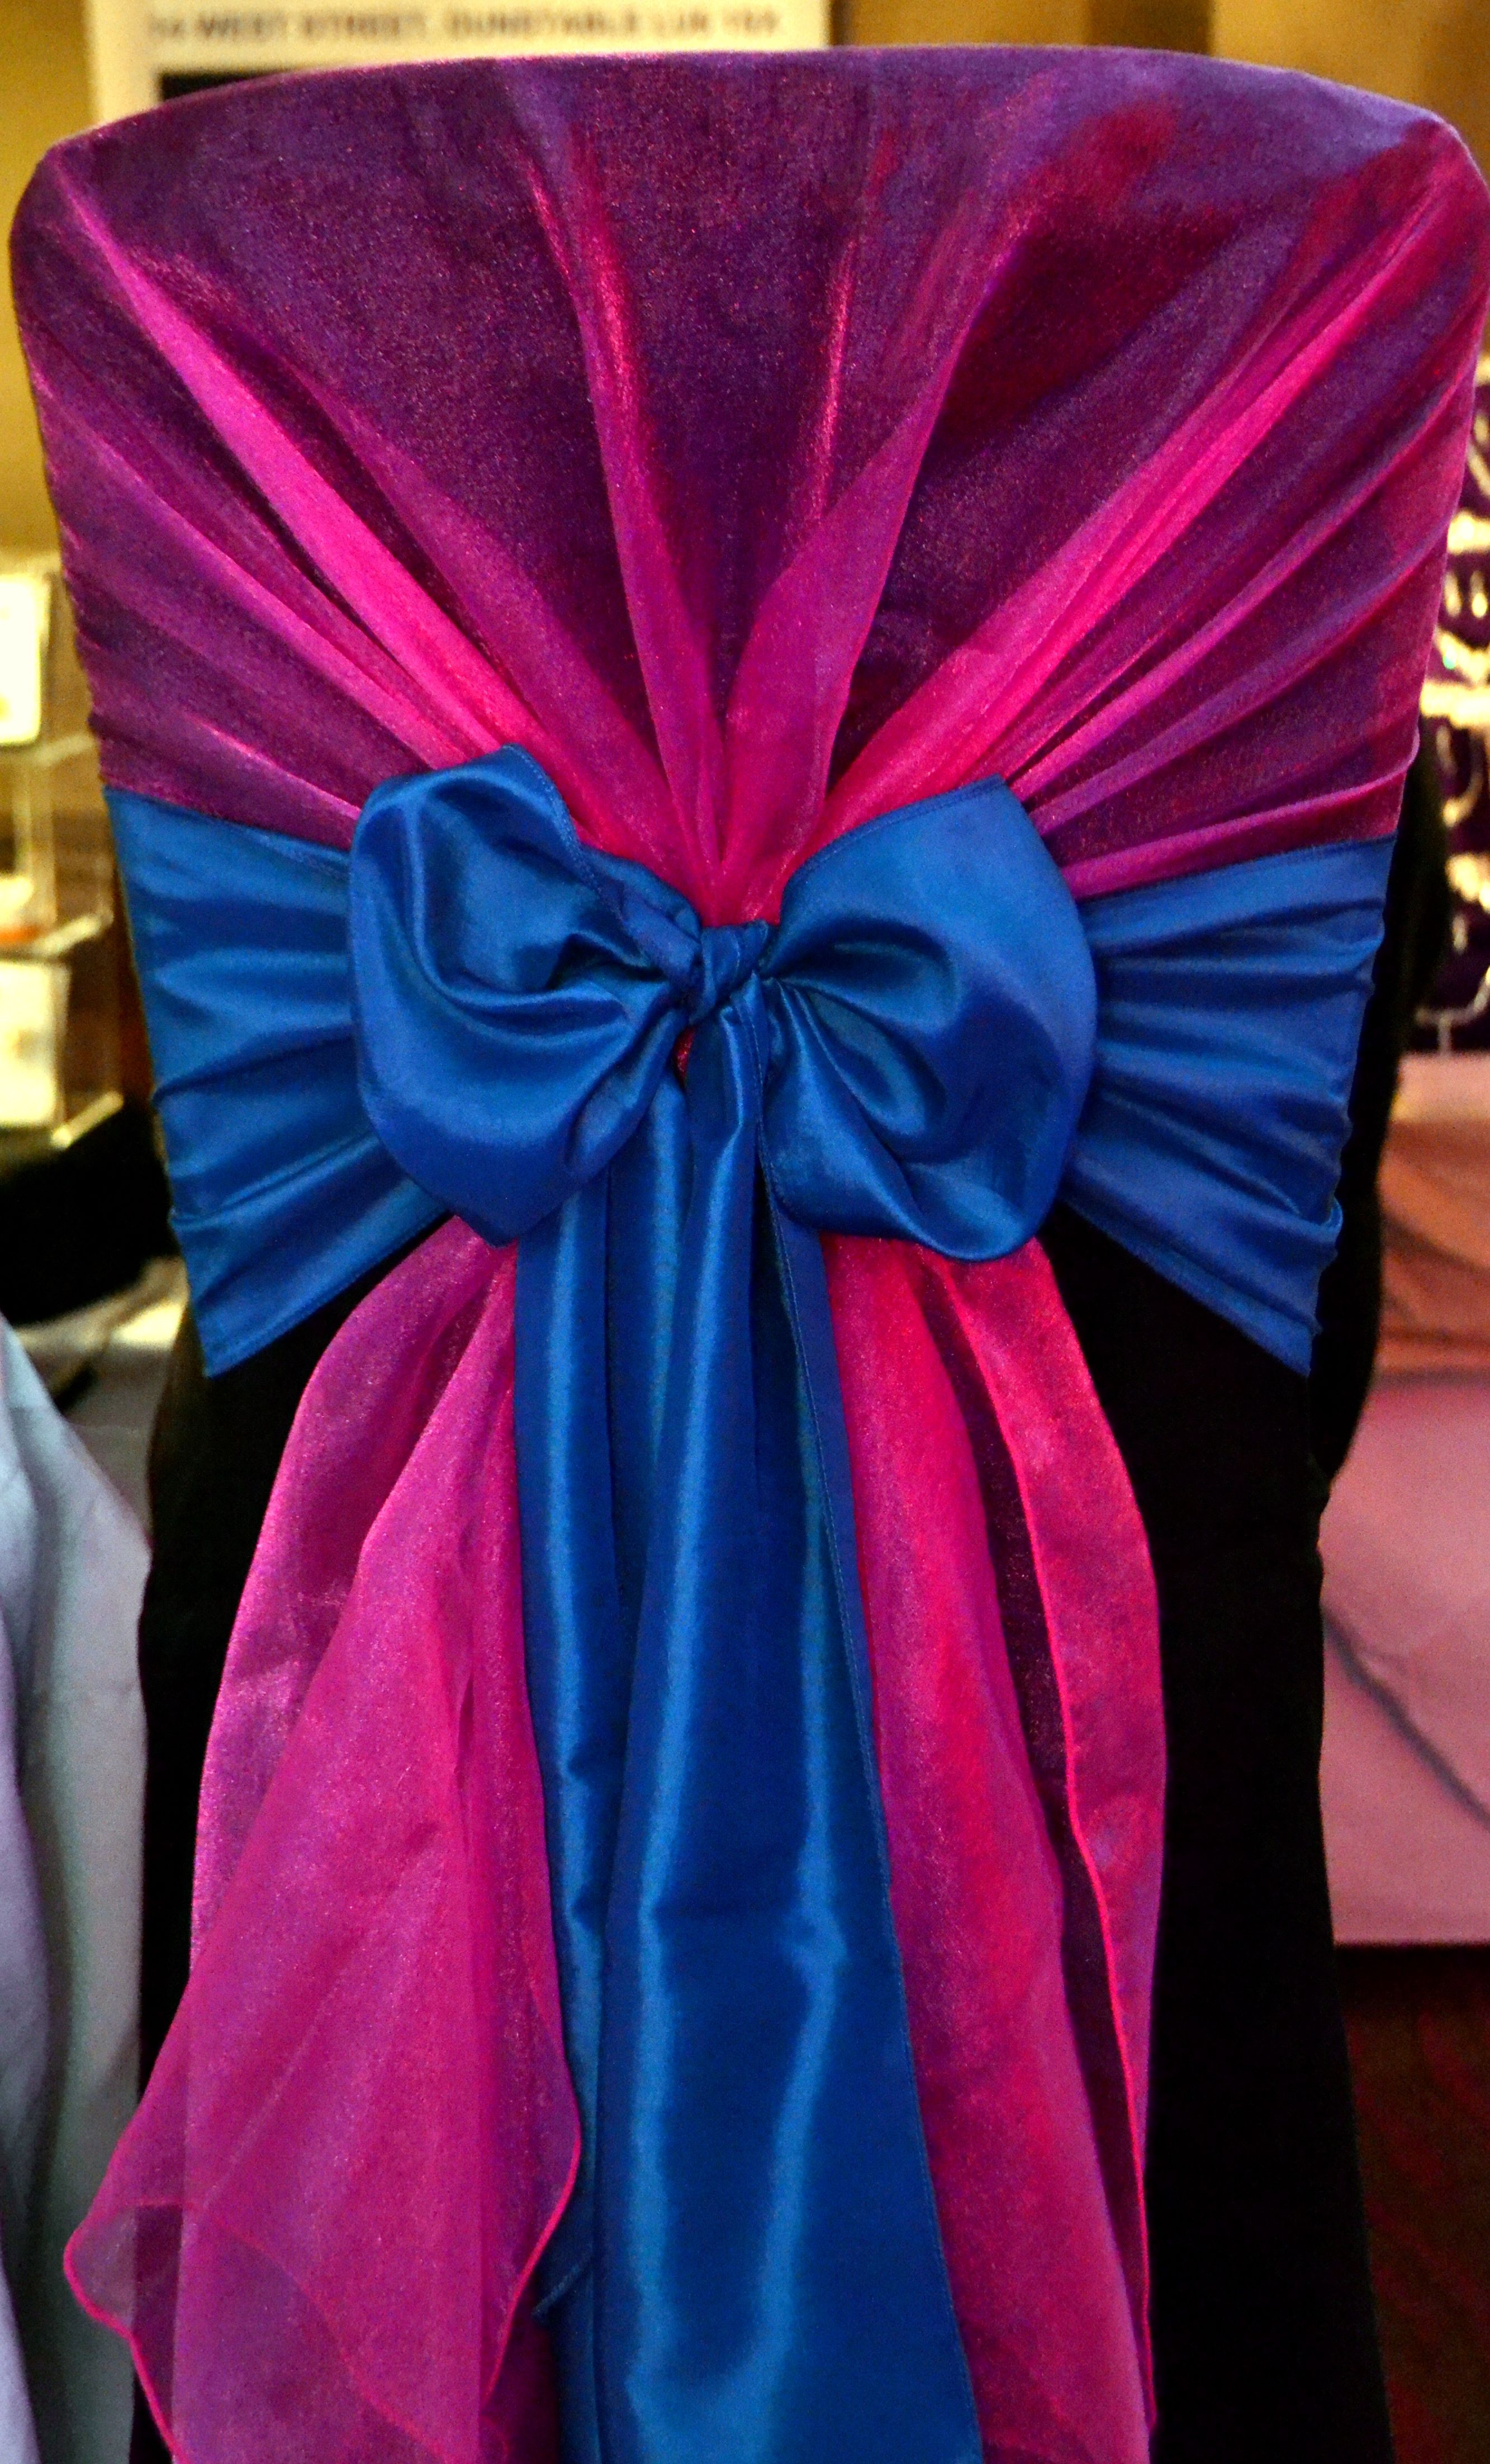 Fuschia pink organz chair shawl with teal satin bow on